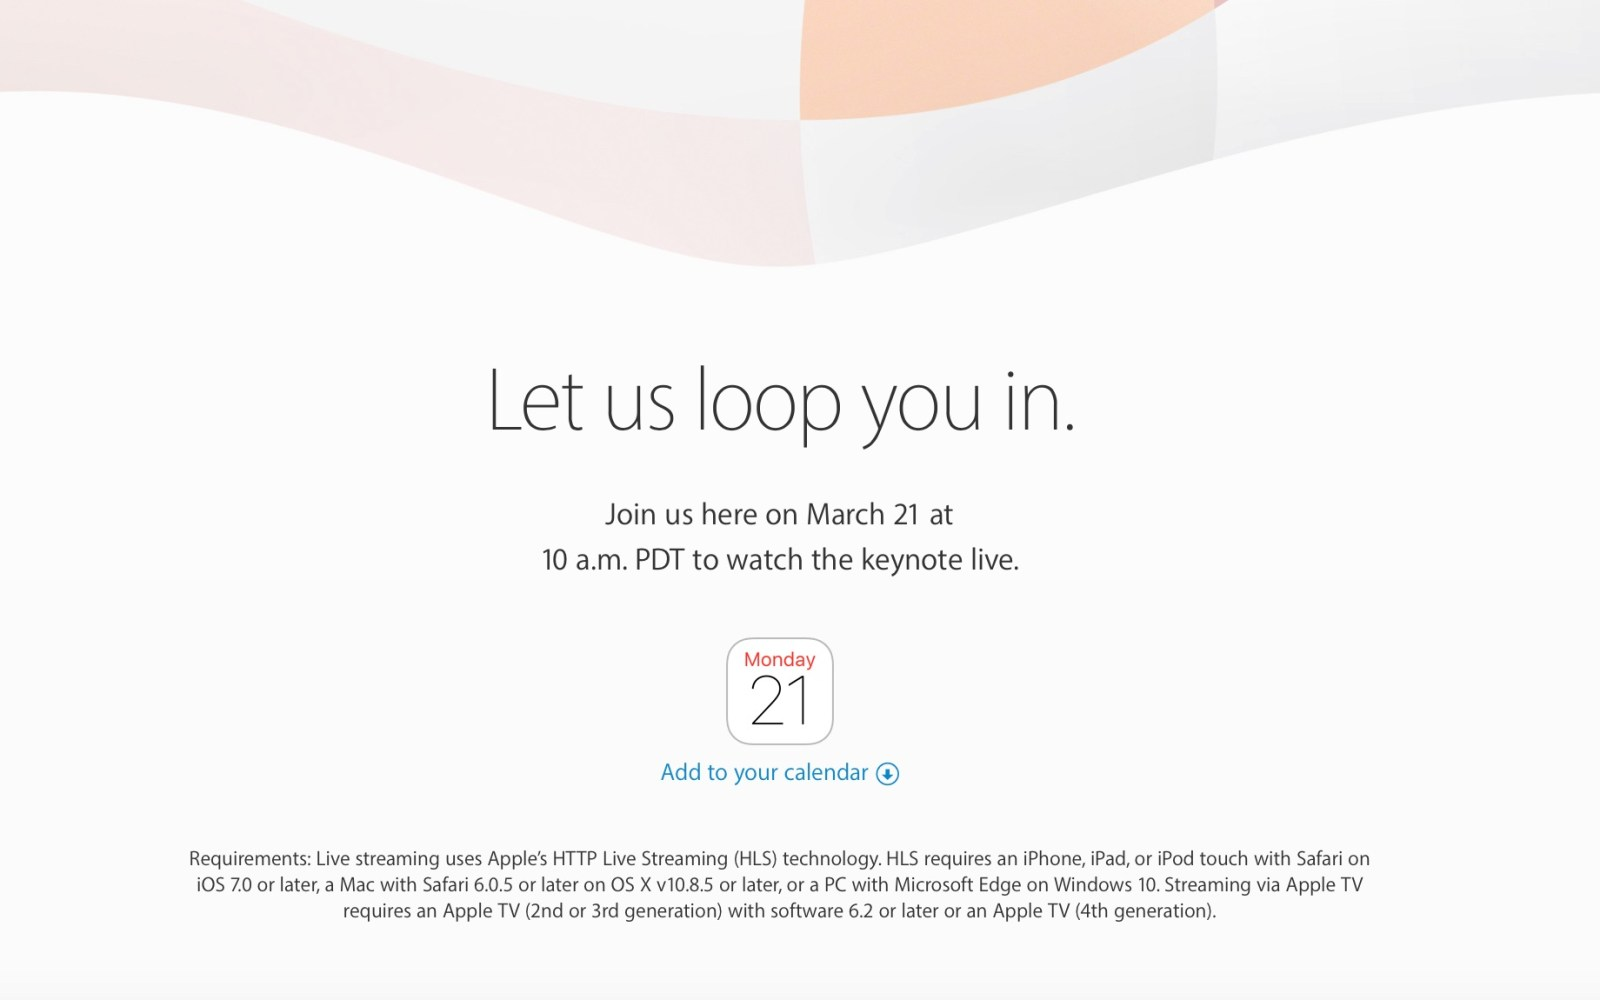 Apple confirms it will livestream March 21st event for iOS, Mac, Apple TV and Windows users